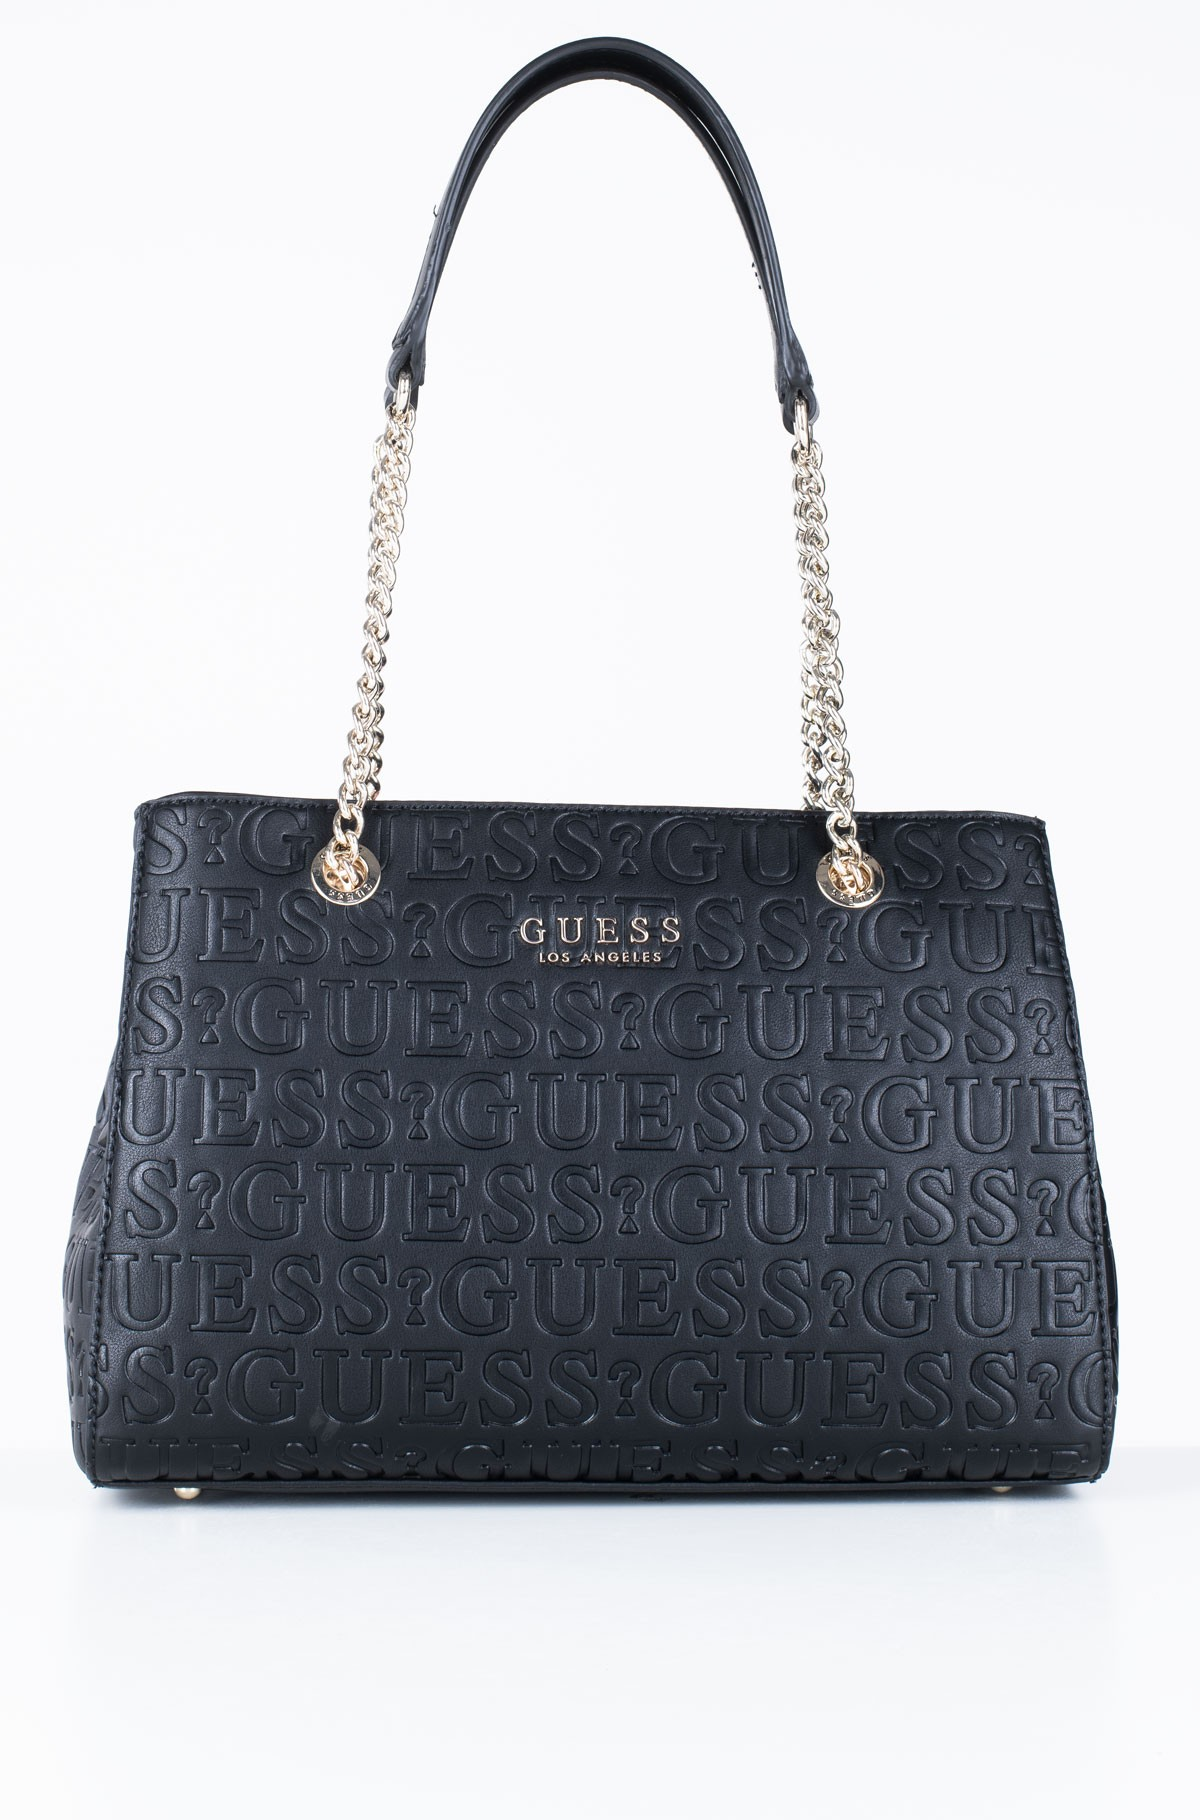 Handbag HWED71 80090-full-1